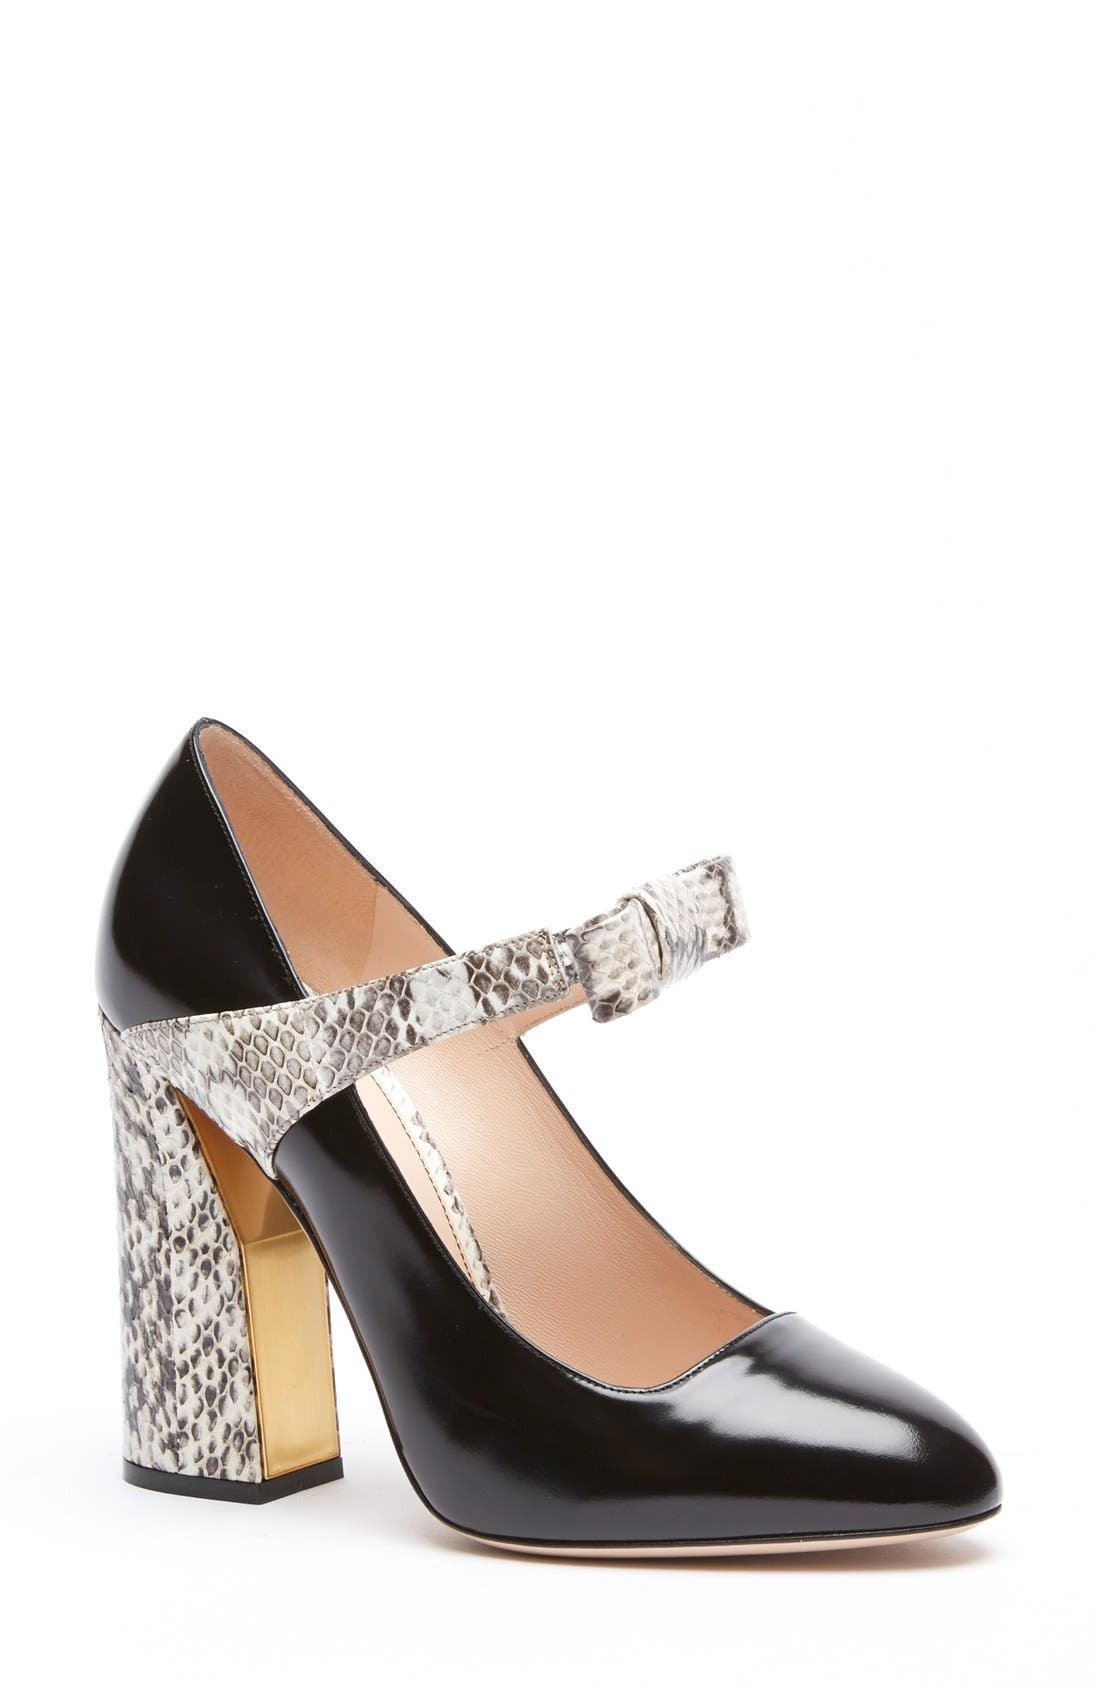 GUCCI 'Nimue' Mary Jane Pump